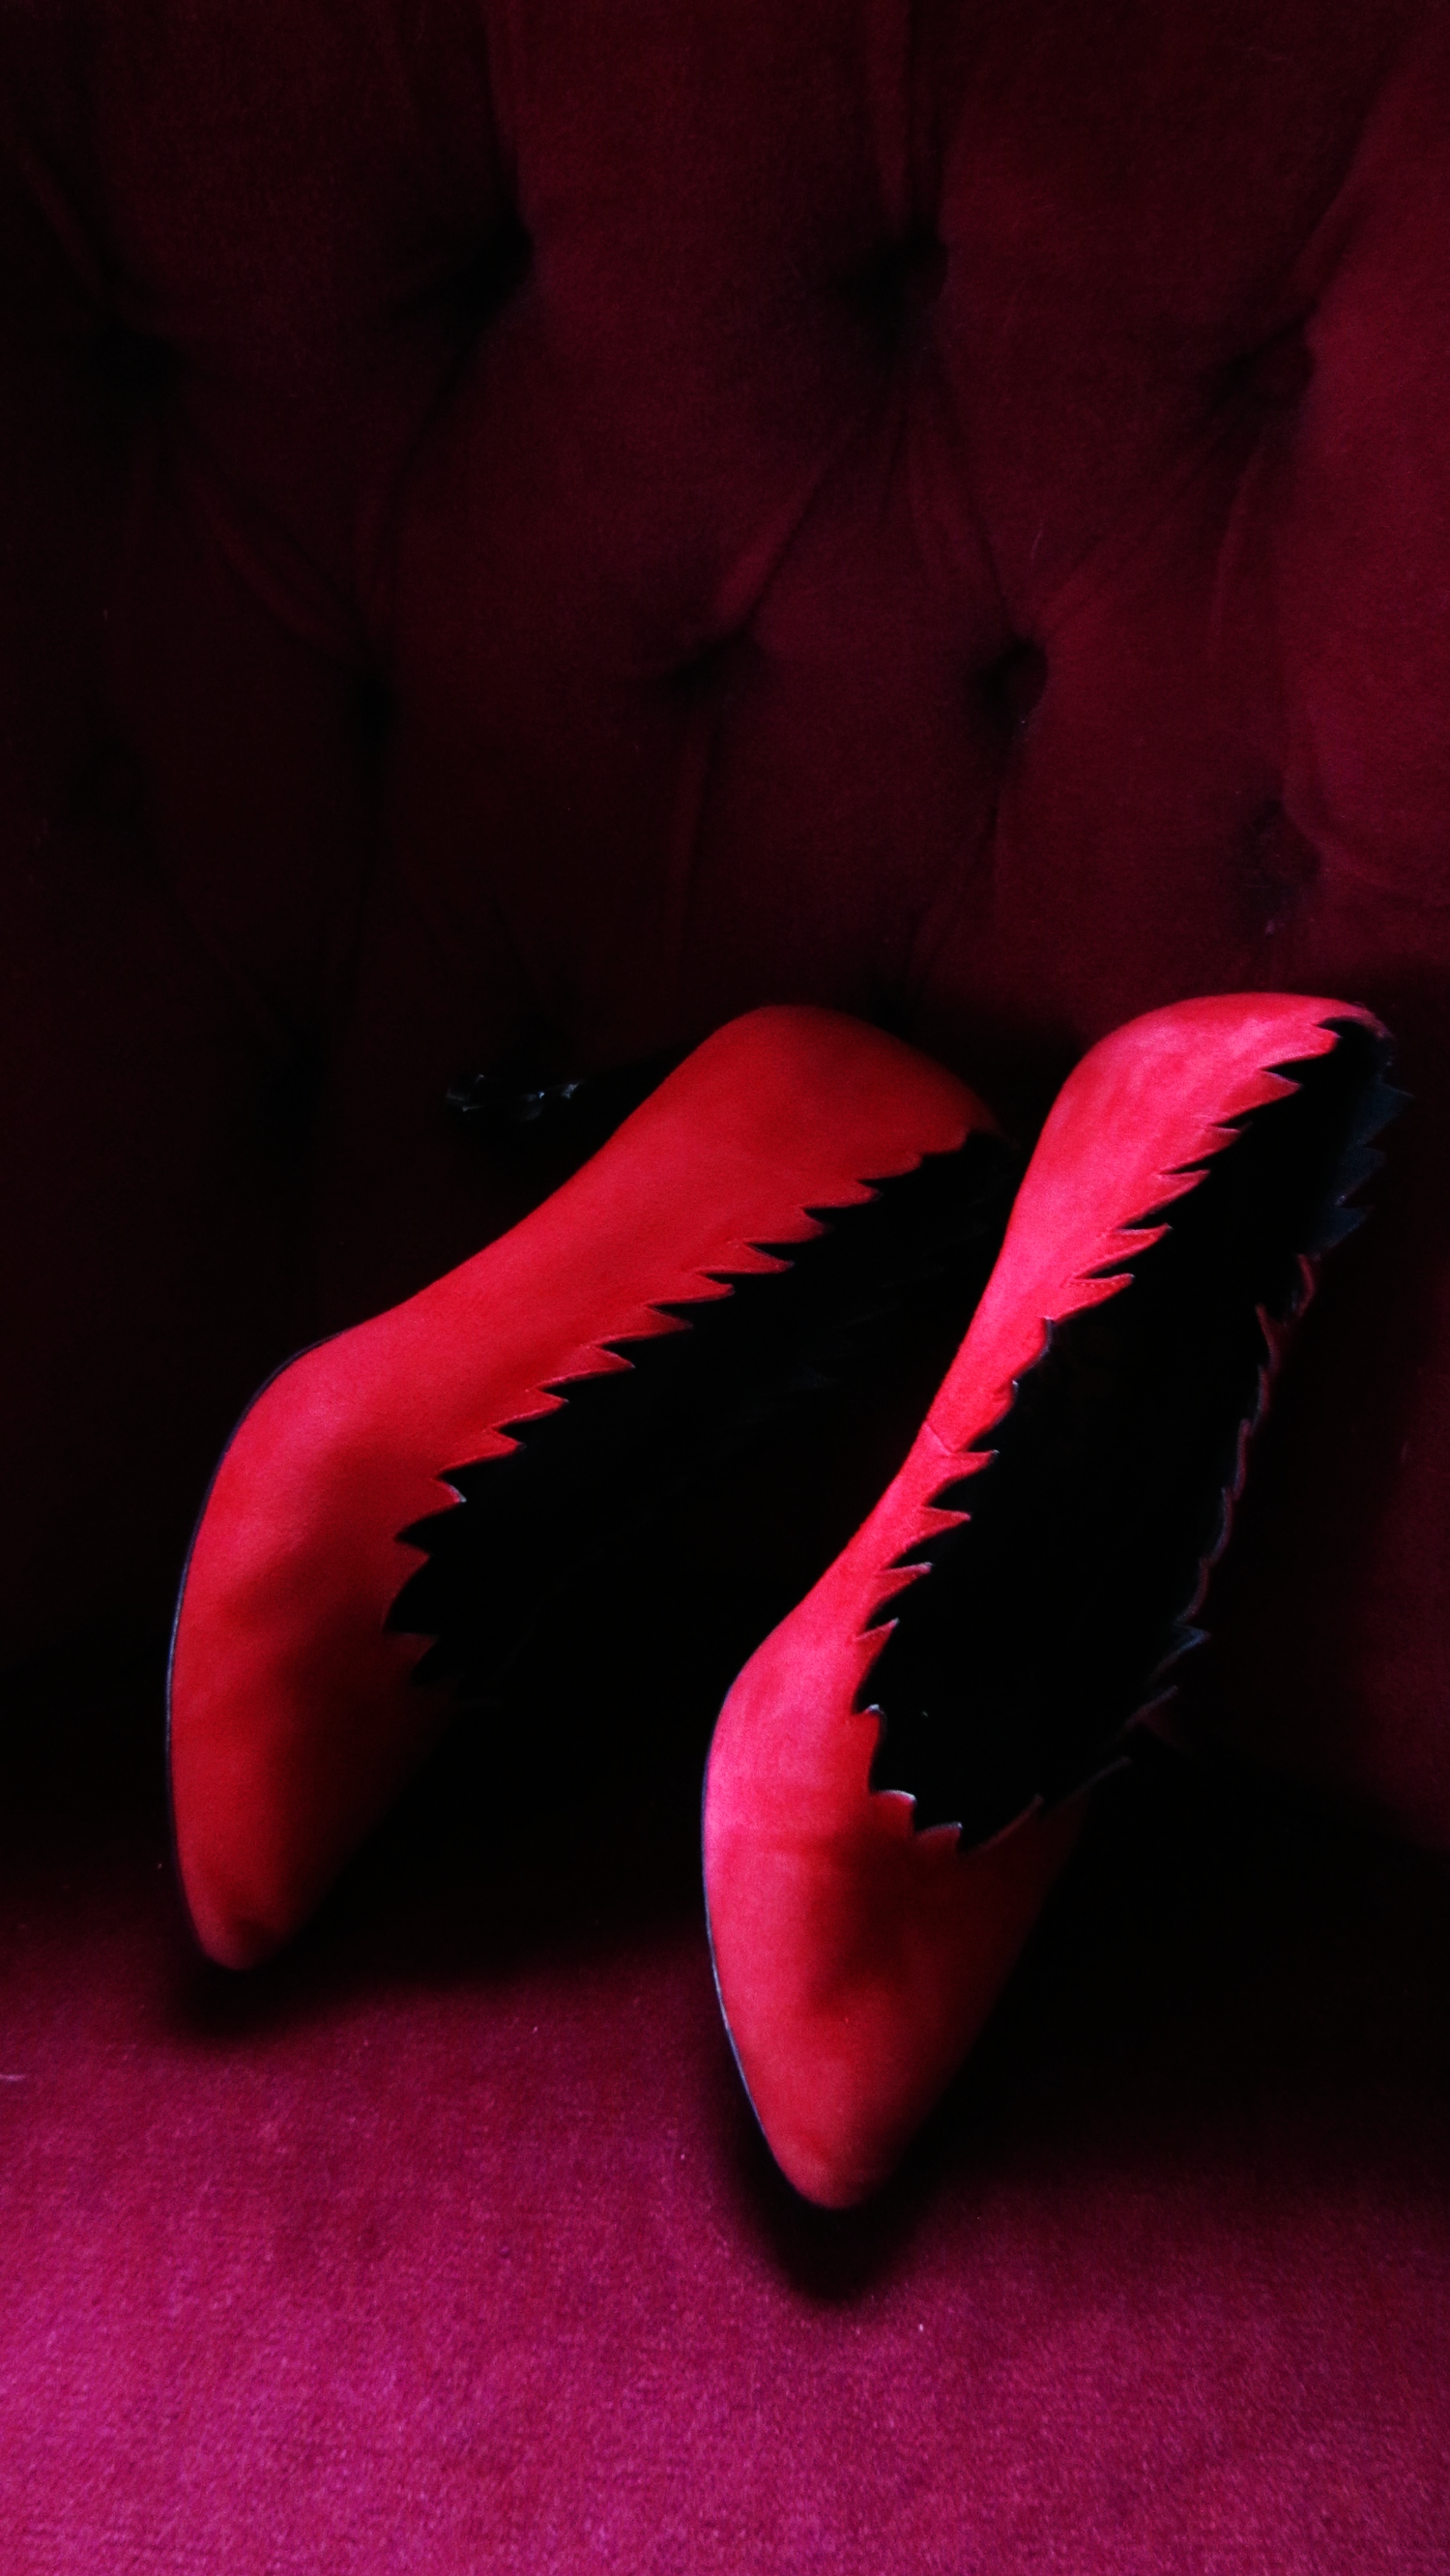 My favourite red shoes.